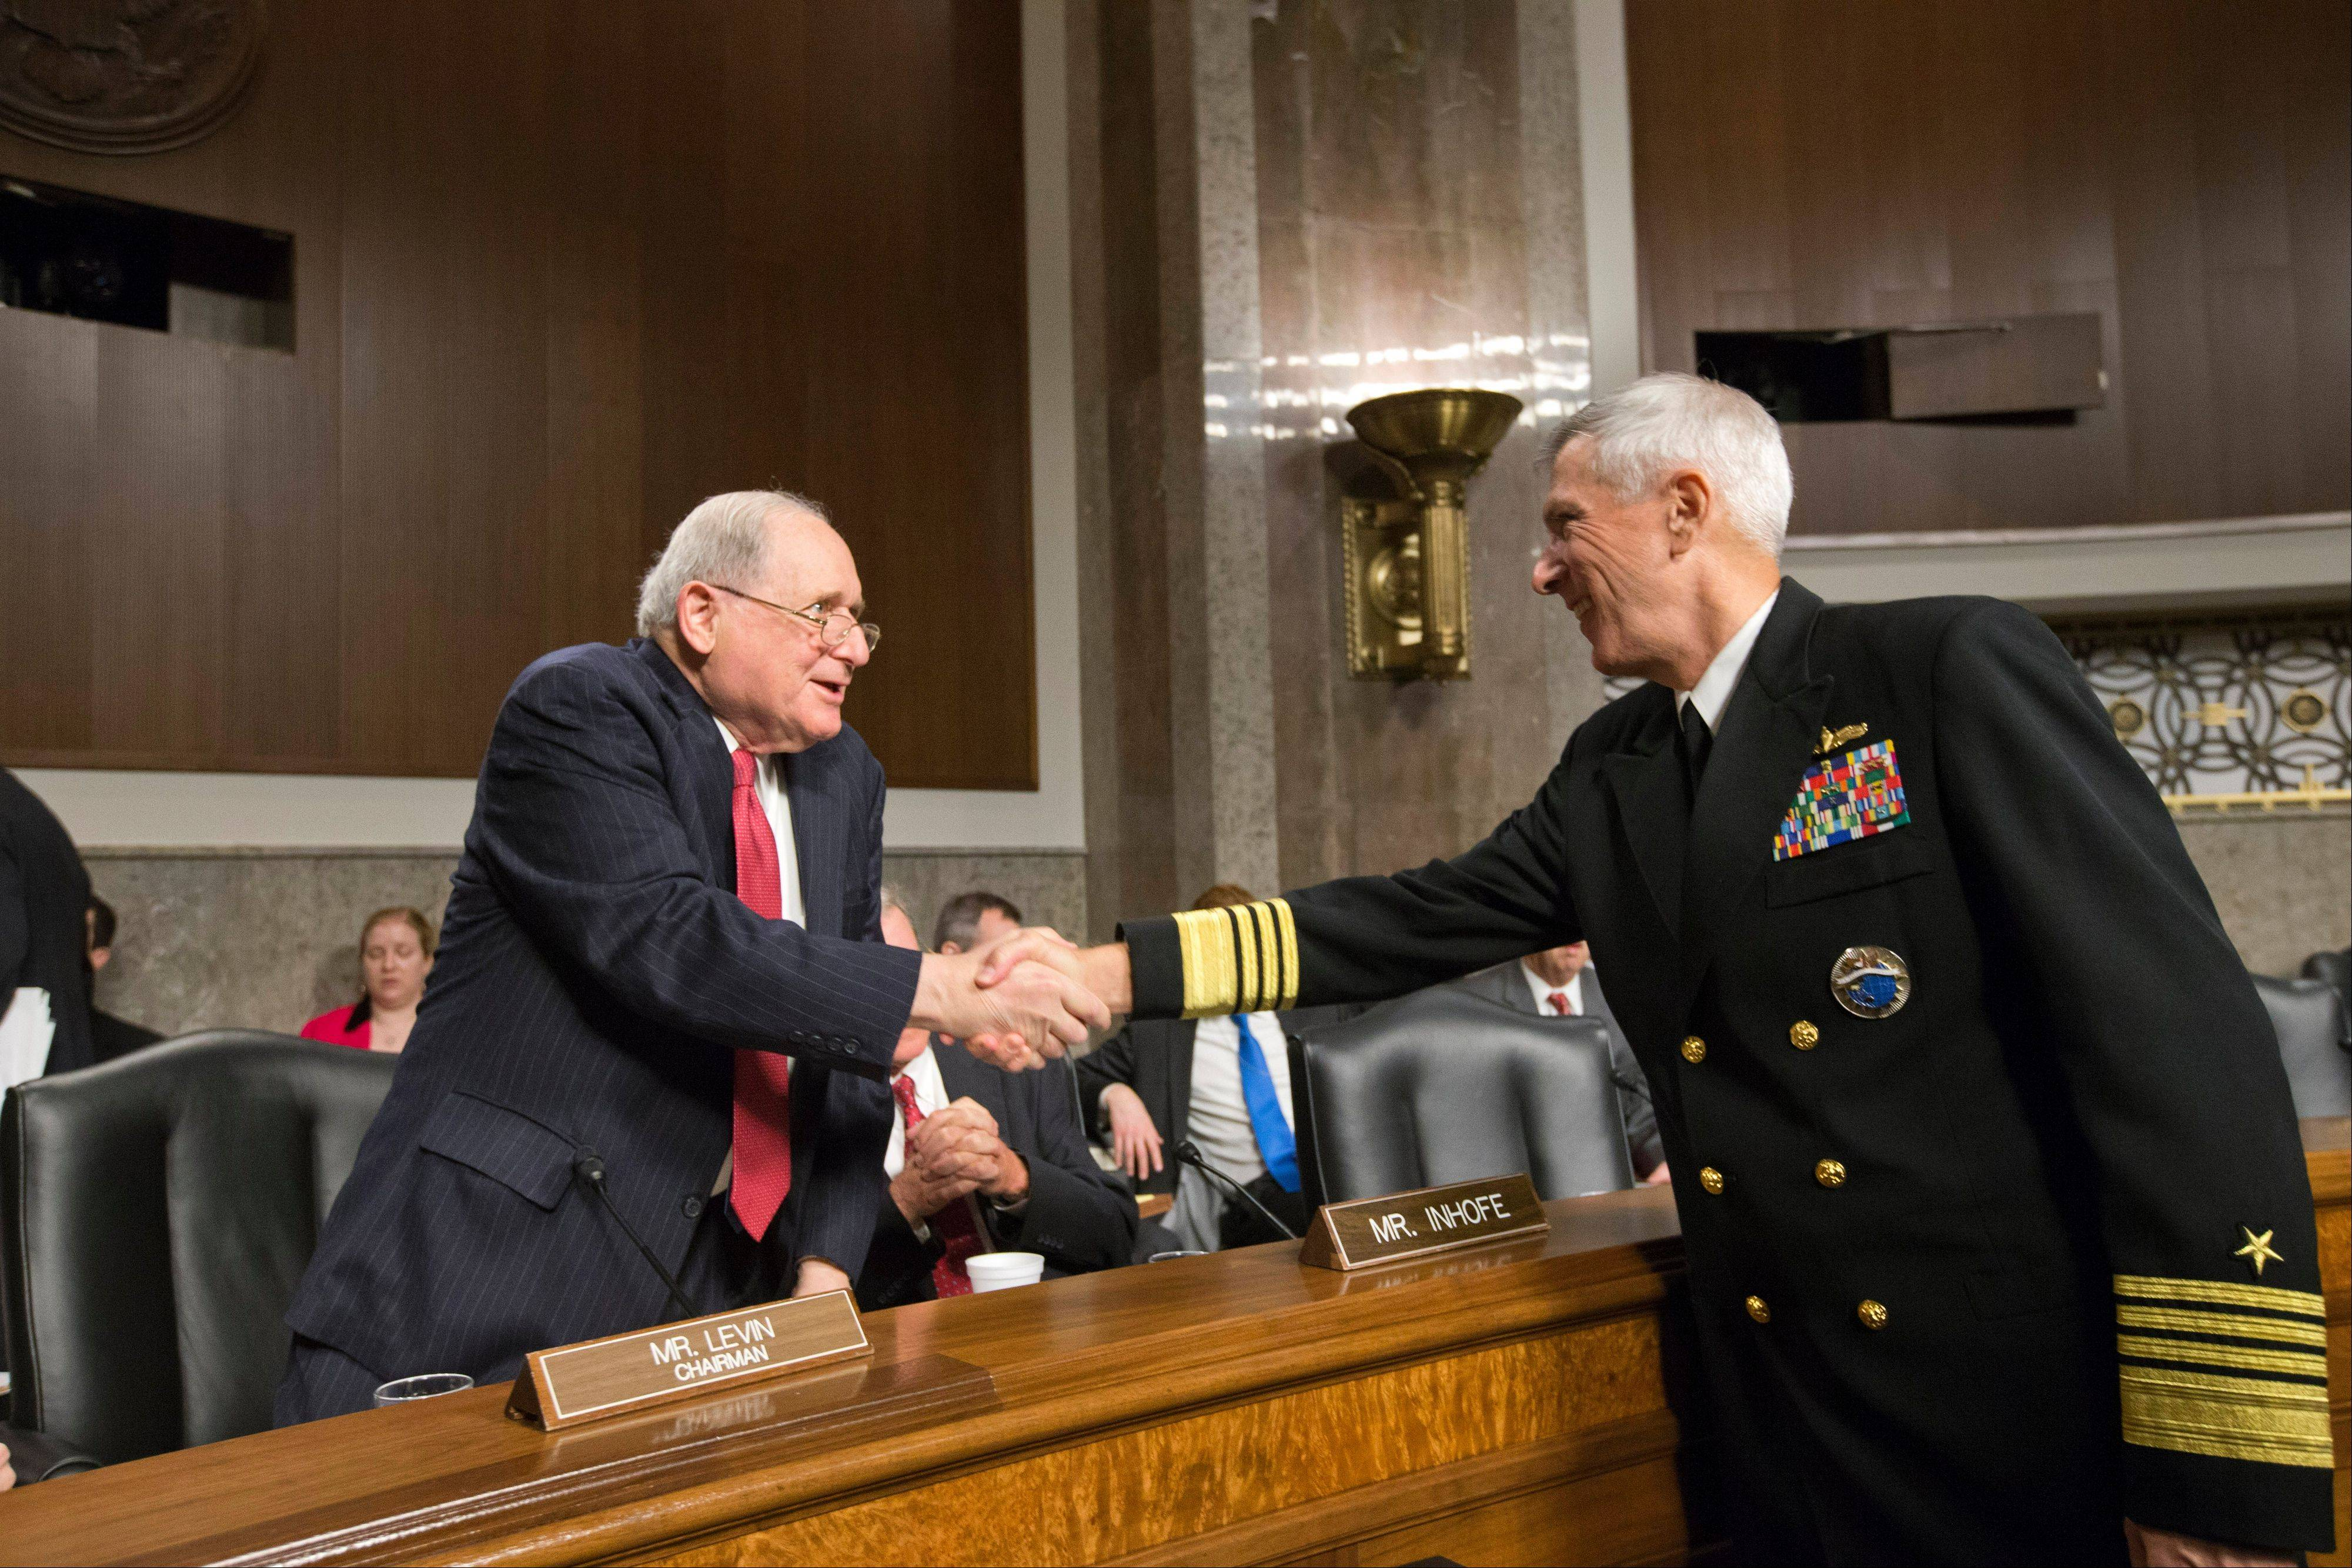 Senate Armed Services Committee Chairman Sen. Carl Levin, a Michigan Democrat, left, welcomes Adm. Samuel Locklear, commander of U.S. Pacific Command, on Capitol Hill Tuesday prior to Locklear testifying before the committee's hearing focusing on the Korean peninsula.